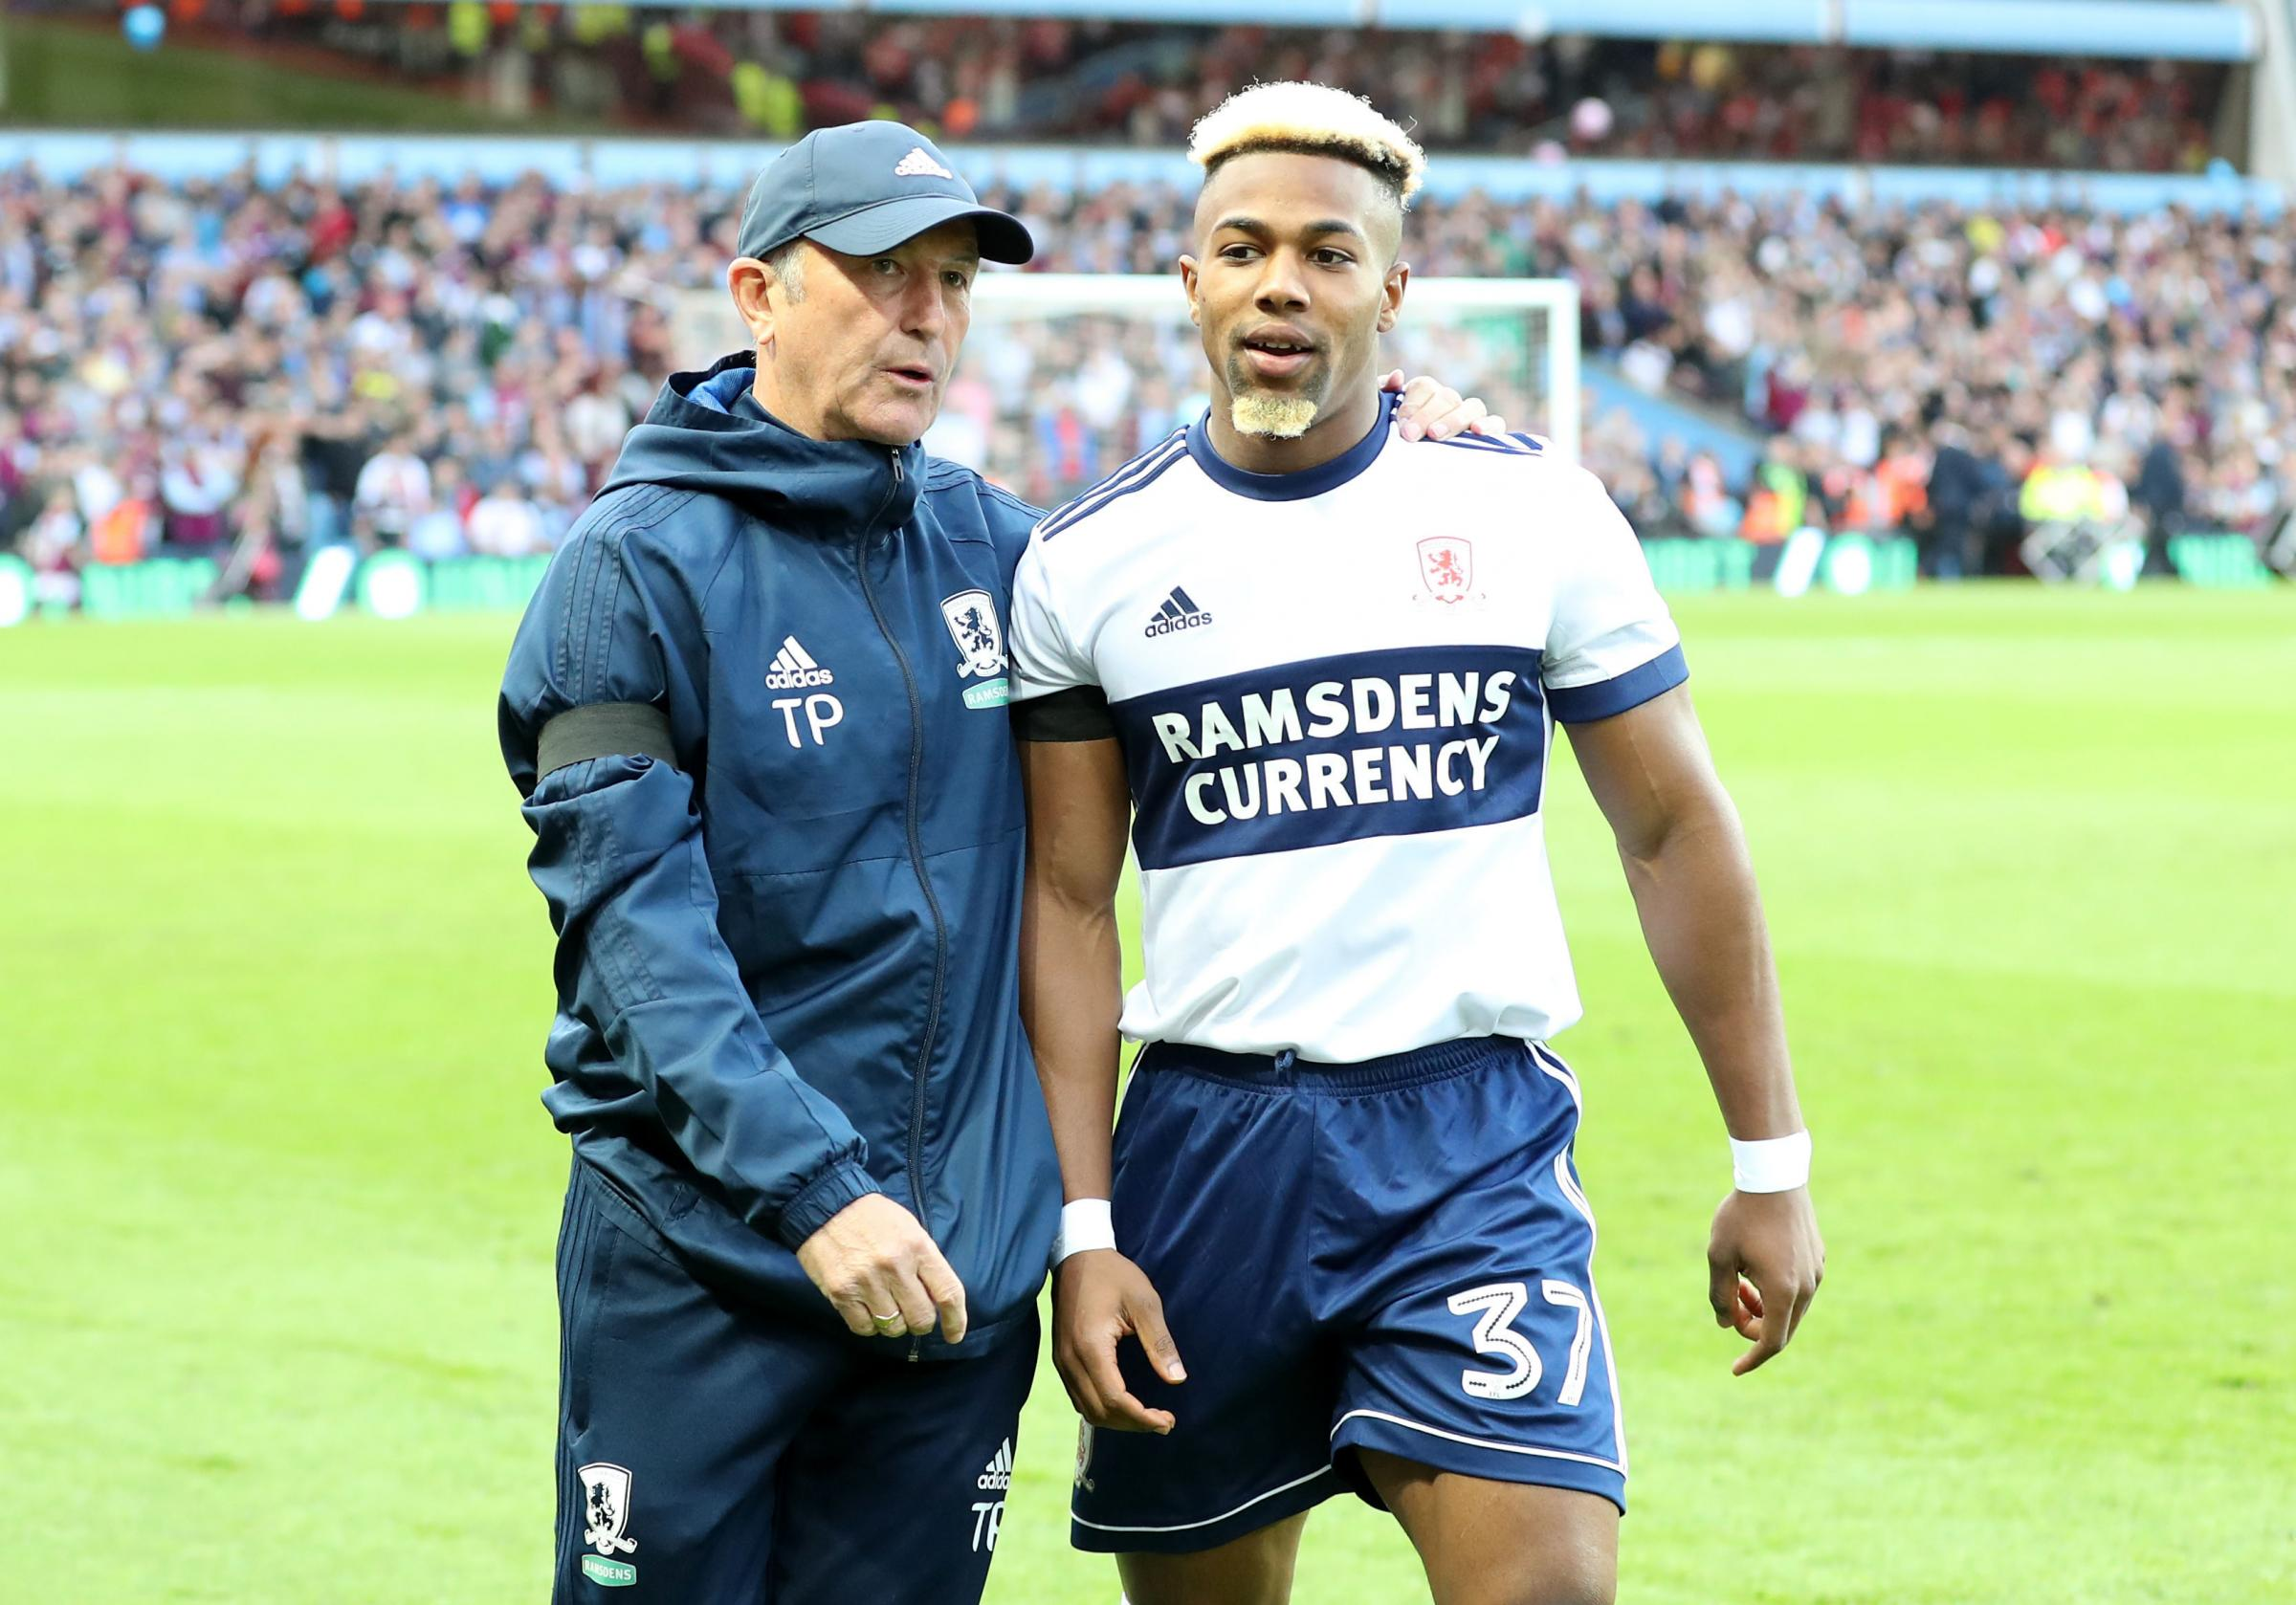 Middlesbrough manager Tony Pulis (left) and Adama Traore during the Sky Bet Championship Playoff match at Villa Park, Birmingham